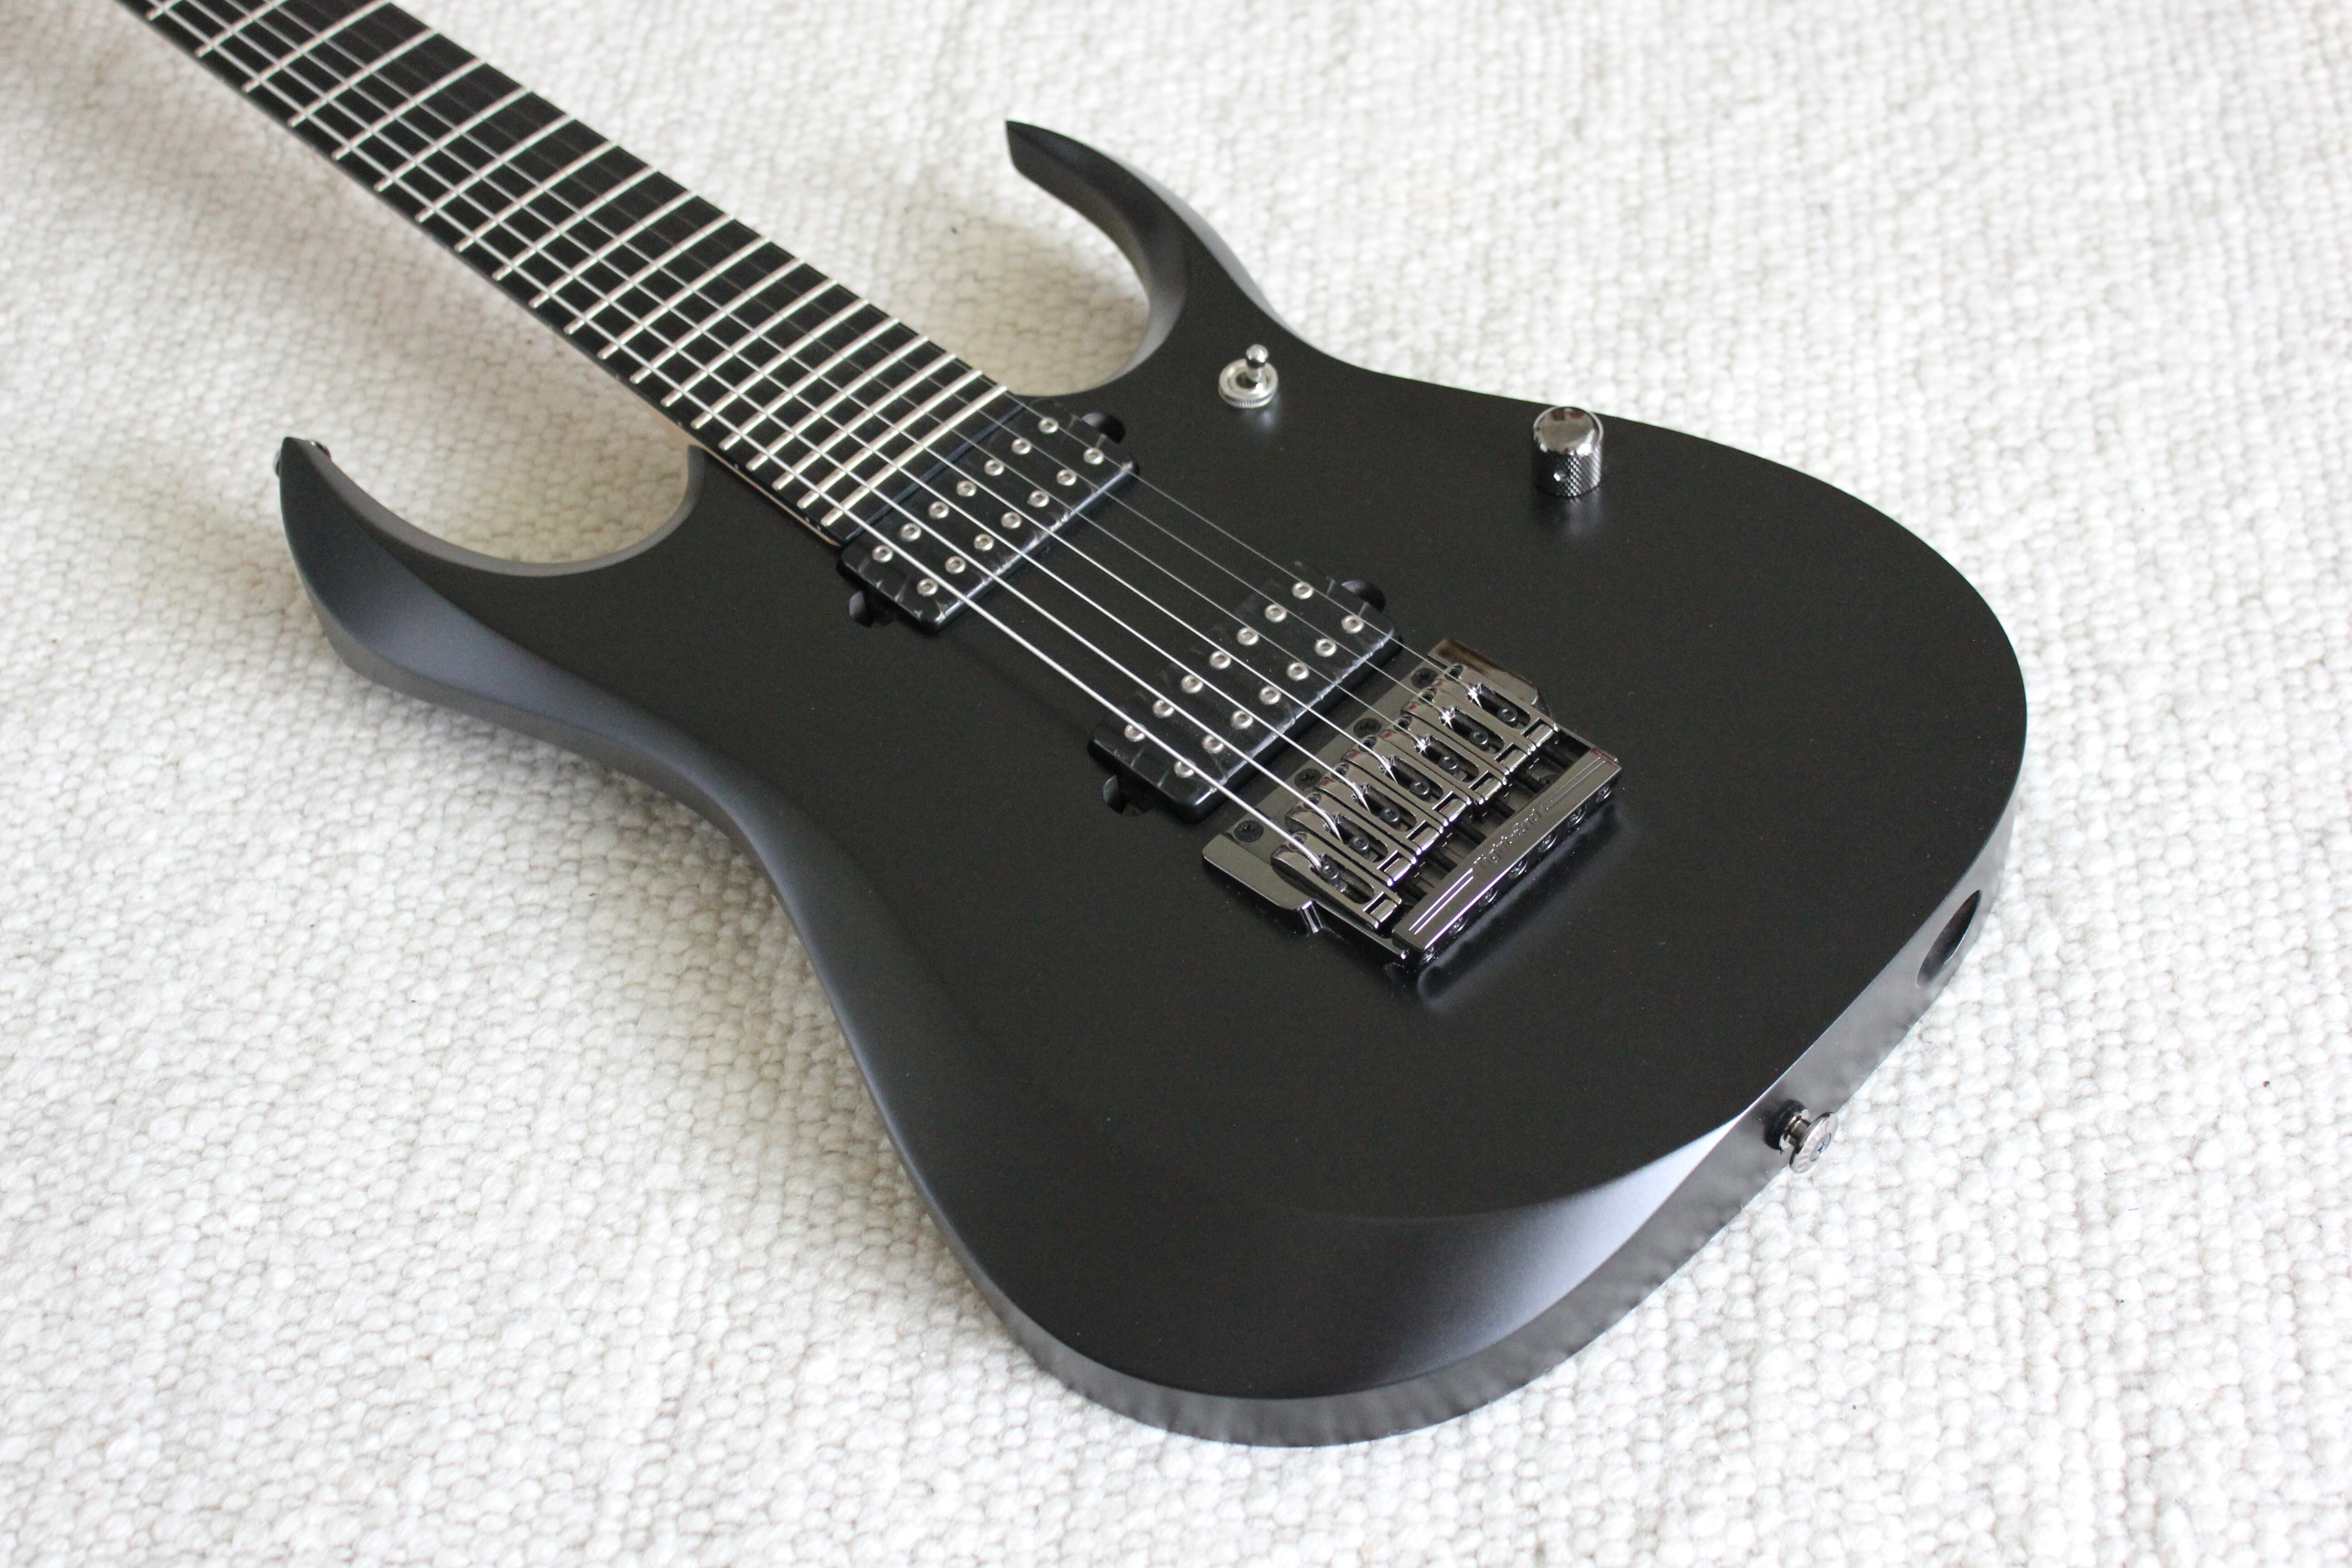 FS - Ibanez RGD 7 UCS and Ibanez RG 970 XL | SevenString org